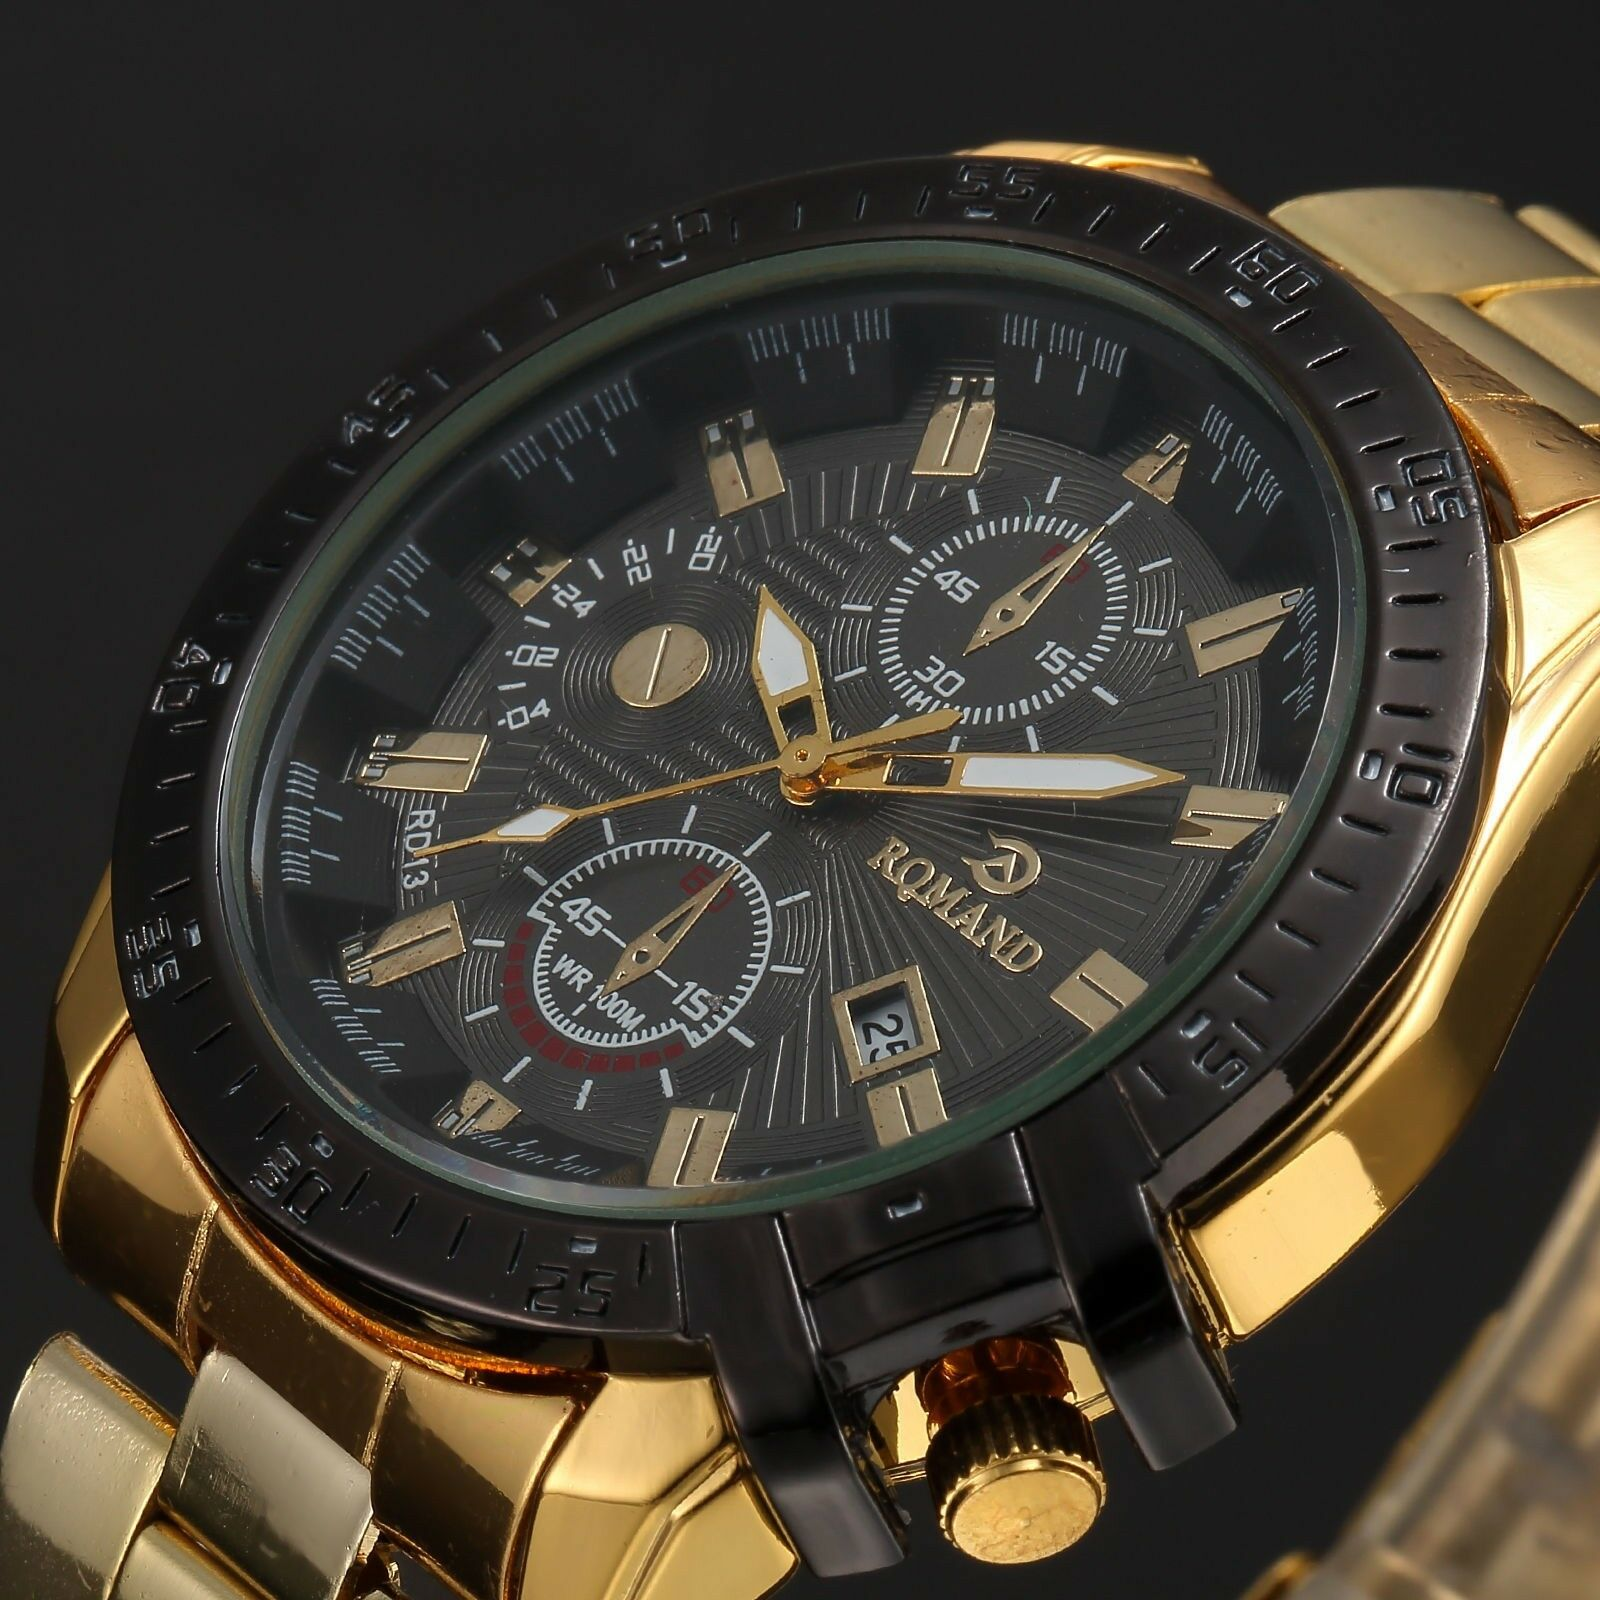 $8.79 - Mens Luxury Gold Stainless Steel Black Dial Date Quartz Analog Wrist Watch New